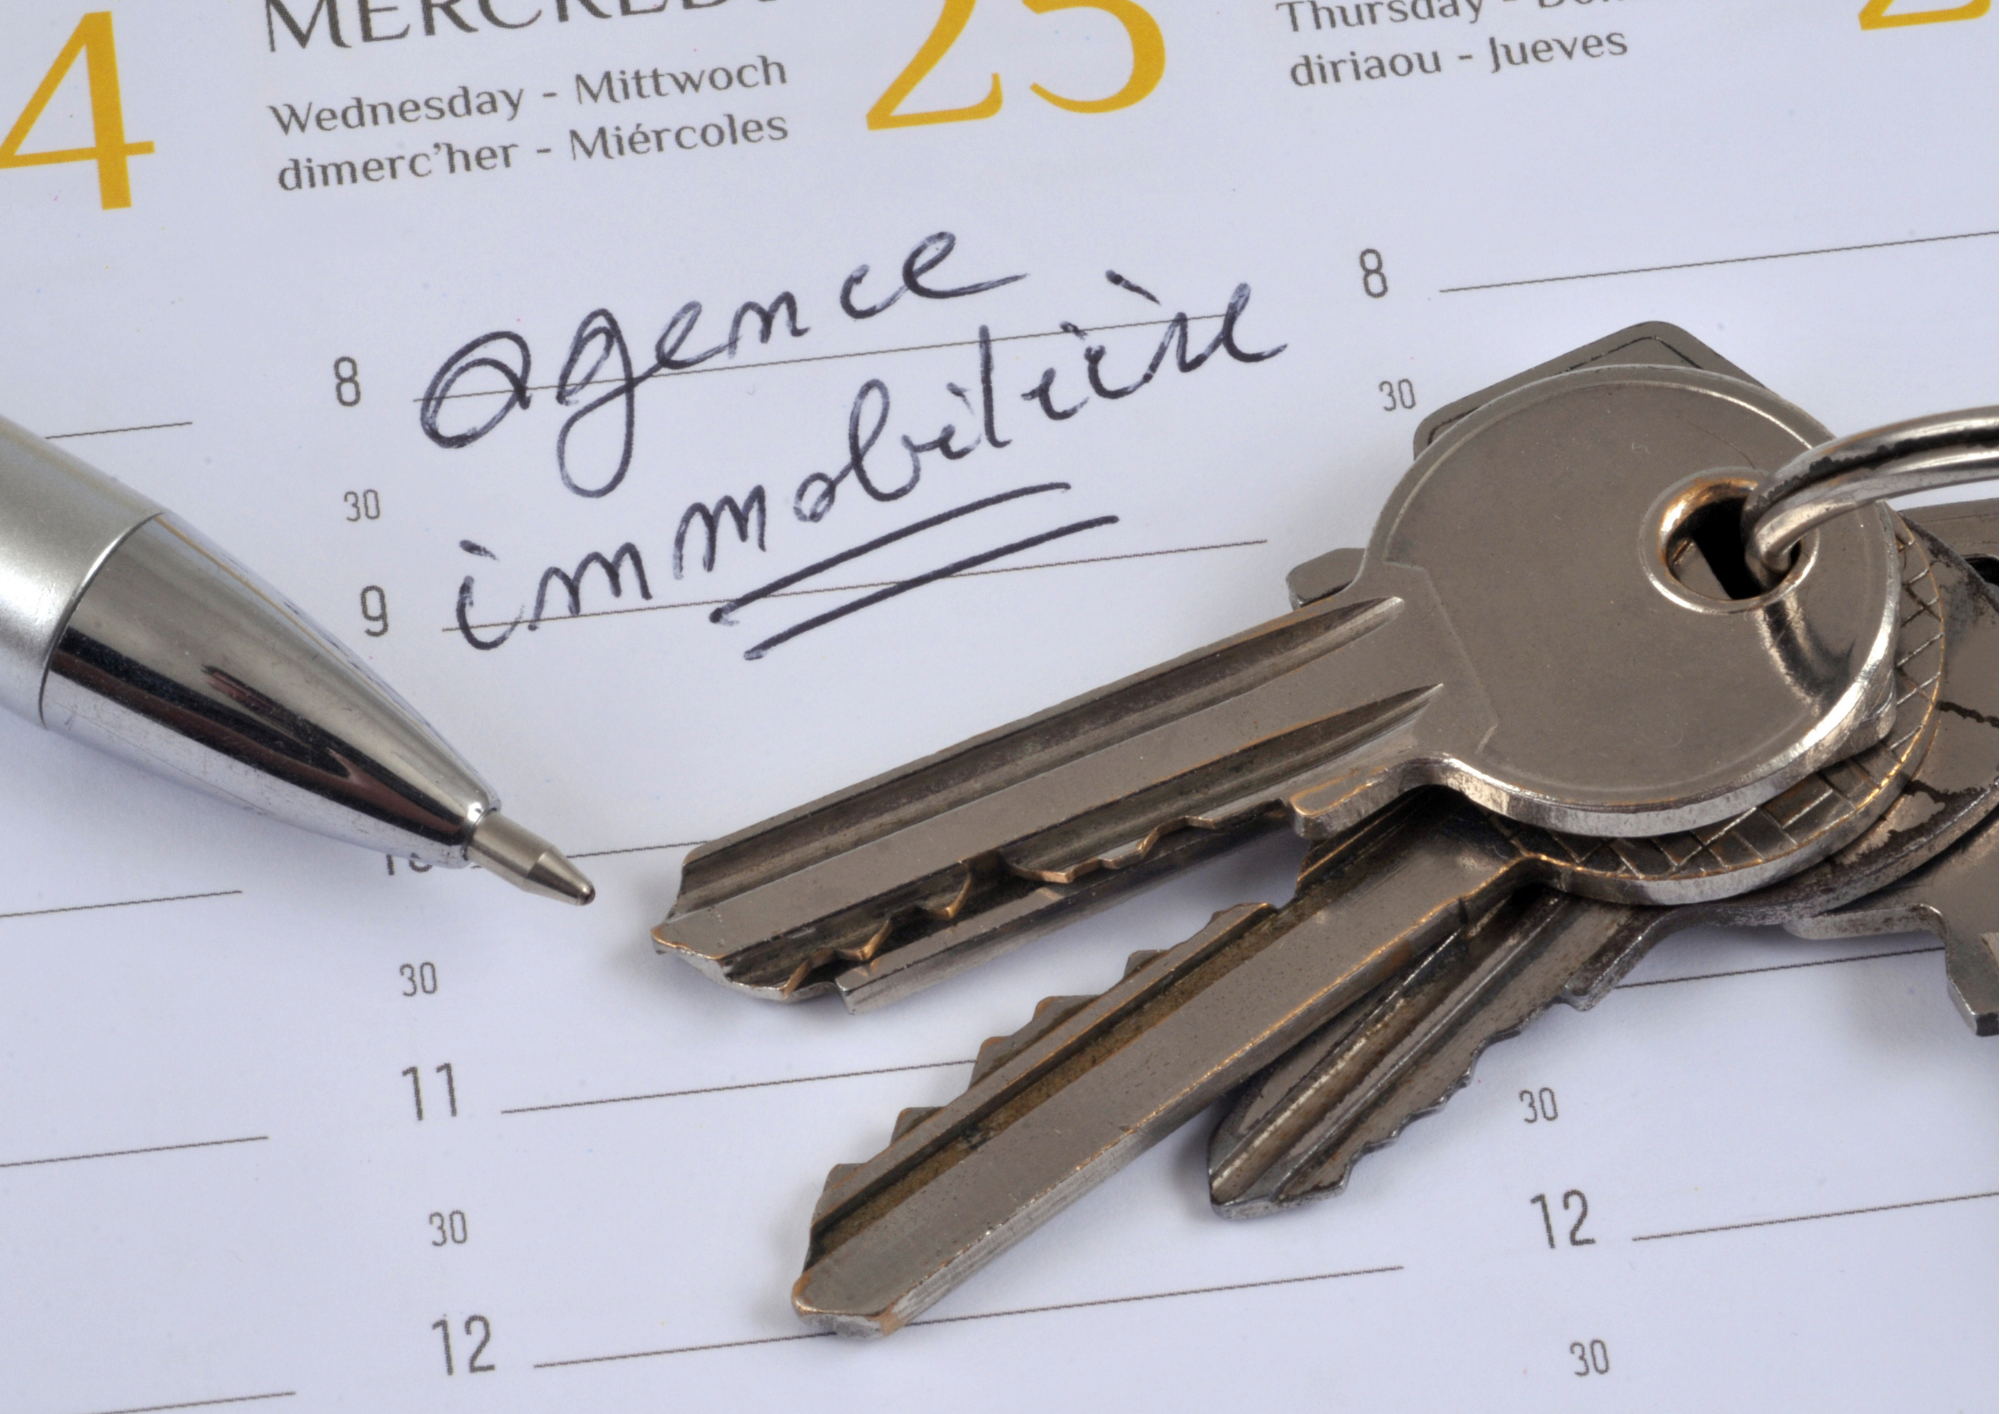 AGENCE IMMOBILIERE PEYROT © les angles